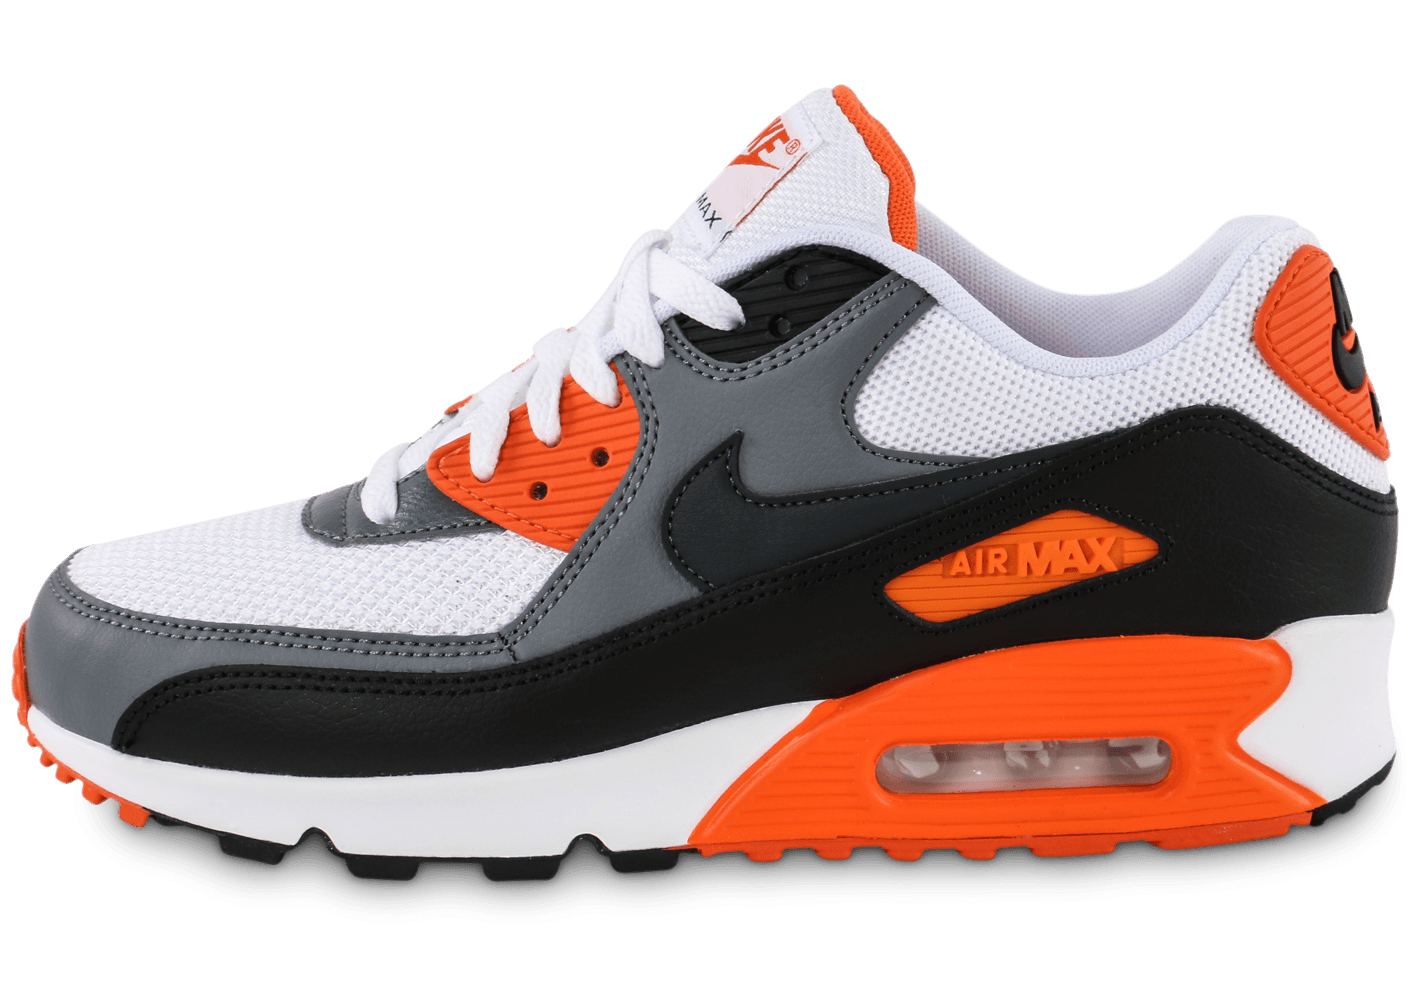 huge selection of a4ac4 b175b Nike Air Max 90 Essential blanc orange - Chaussures Baskets homme -  Chausport